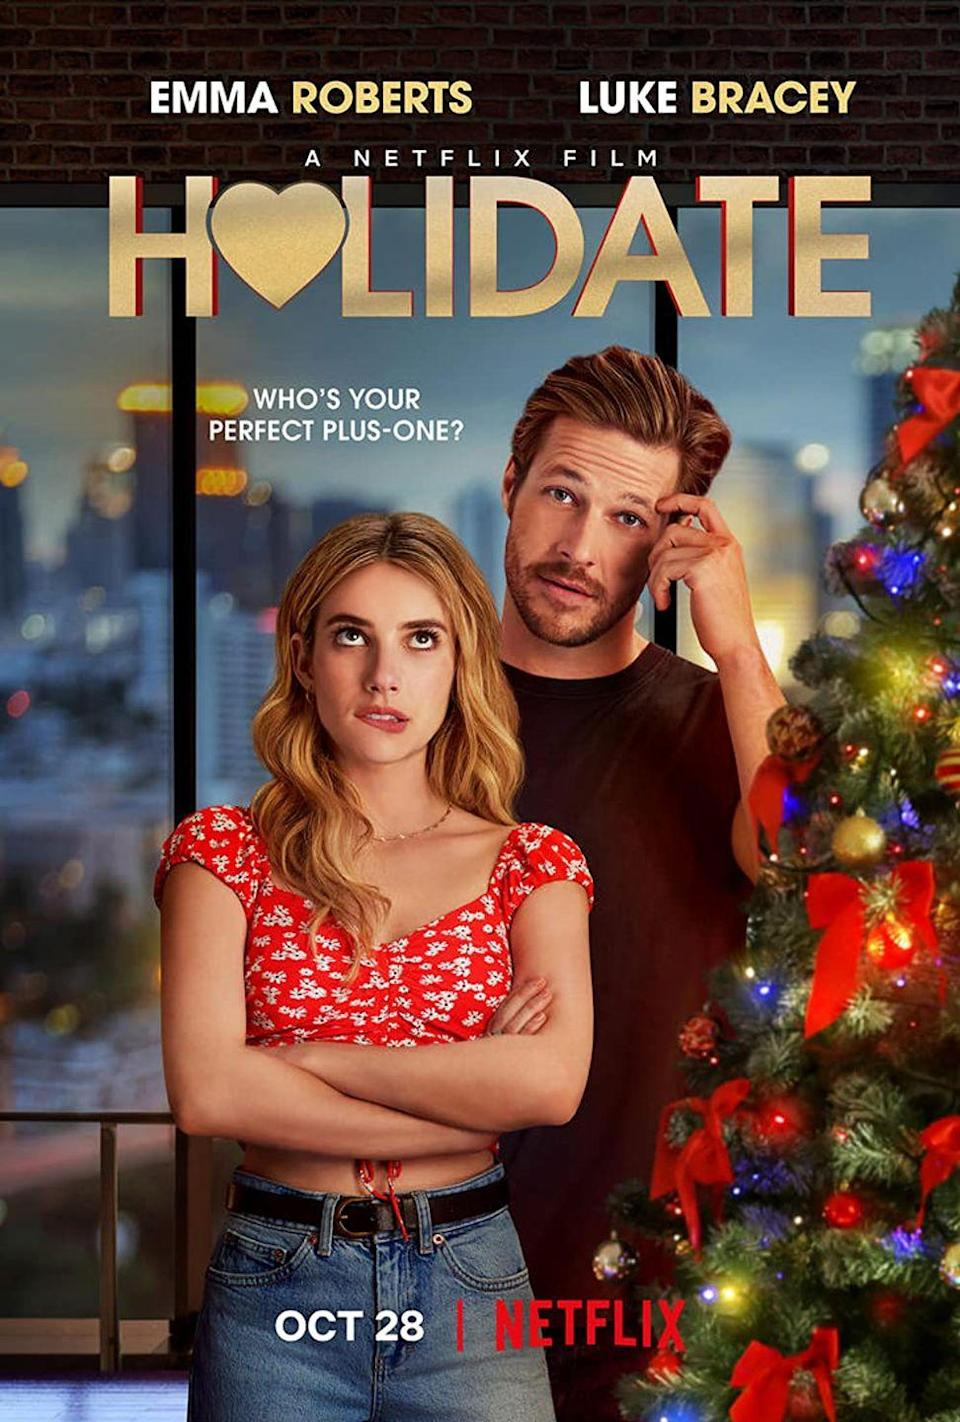 """<p>What's a list of holiday movies without at least one """"friends with judgy families who promise to just be each other's plus one but end up falling in love with each other"""" film? While it may seem like a tired trope, the scenes with Kristen Chenoweth alone make <em><a href=""""https://www.womenshealthmag.com/life/g34535115/movies-like-holidate/"""" rel=""""nofollow noopener"""" target=""""_blank"""" data-ylk=""""slk:Holidate"""" class=""""link rapid-noclick-resp"""">Holidate</a></em> worth a watch</p><p><a class=""""link rapid-noclick-resp"""" href=""""https://www.netflix.com/title/81034553"""" rel=""""nofollow noopener"""" target=""""_blank"""" data-ylk=""""slk:Watch Now"""">Watch Now</a></p>"""